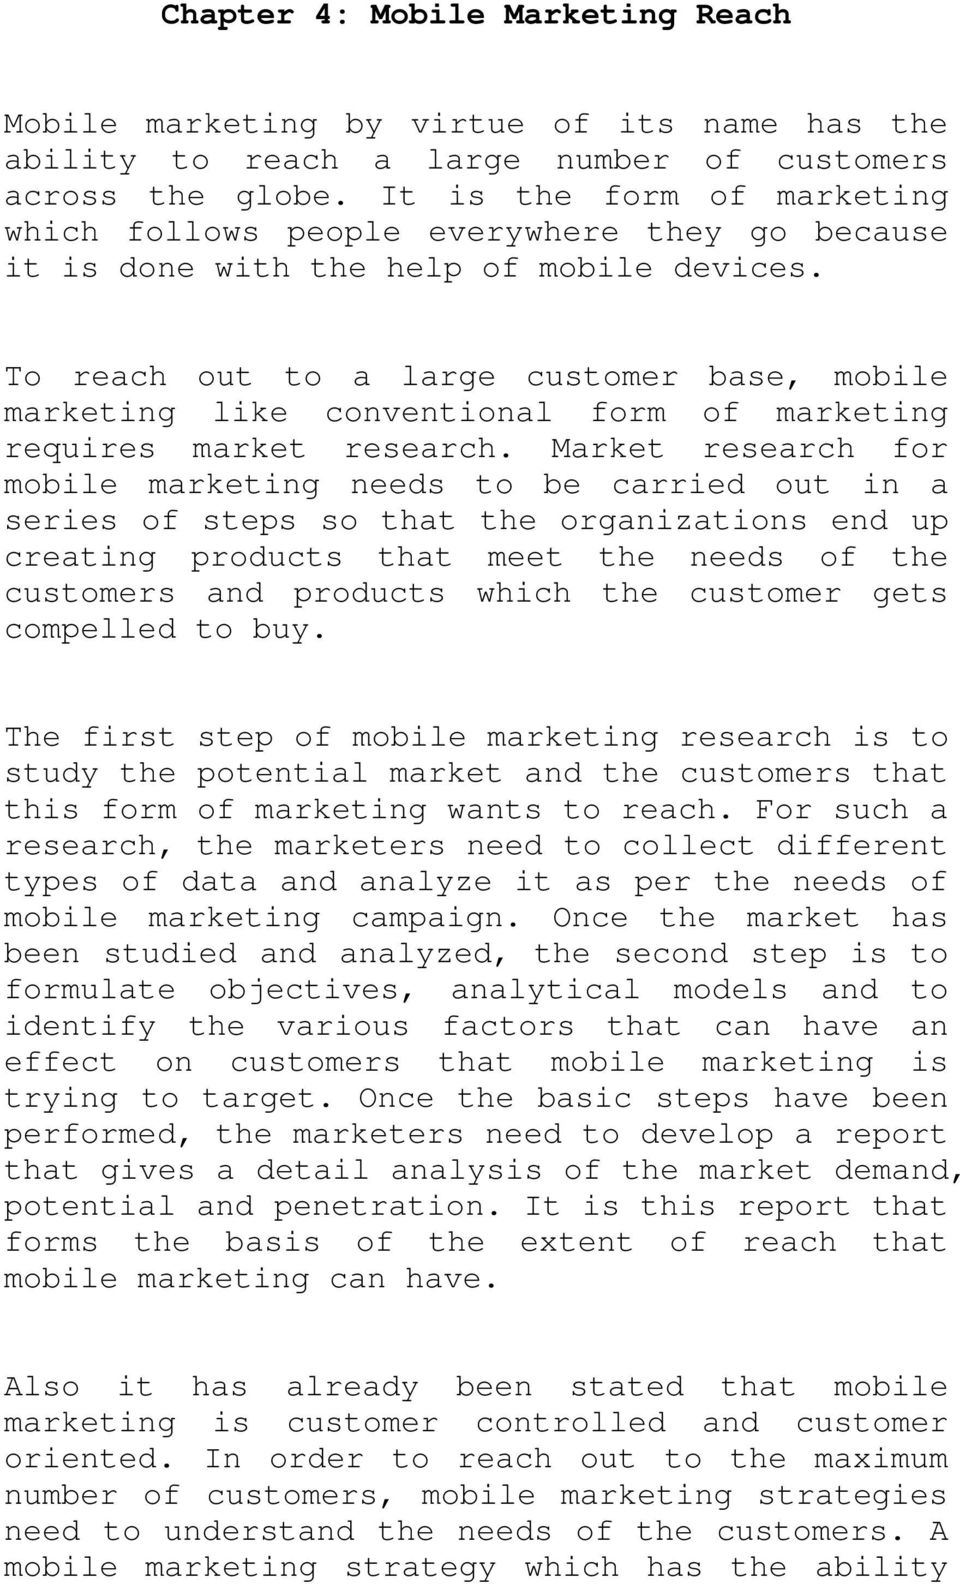 To reach out to a large customer base, mobile marketing like conventional form of marketing requires market research.